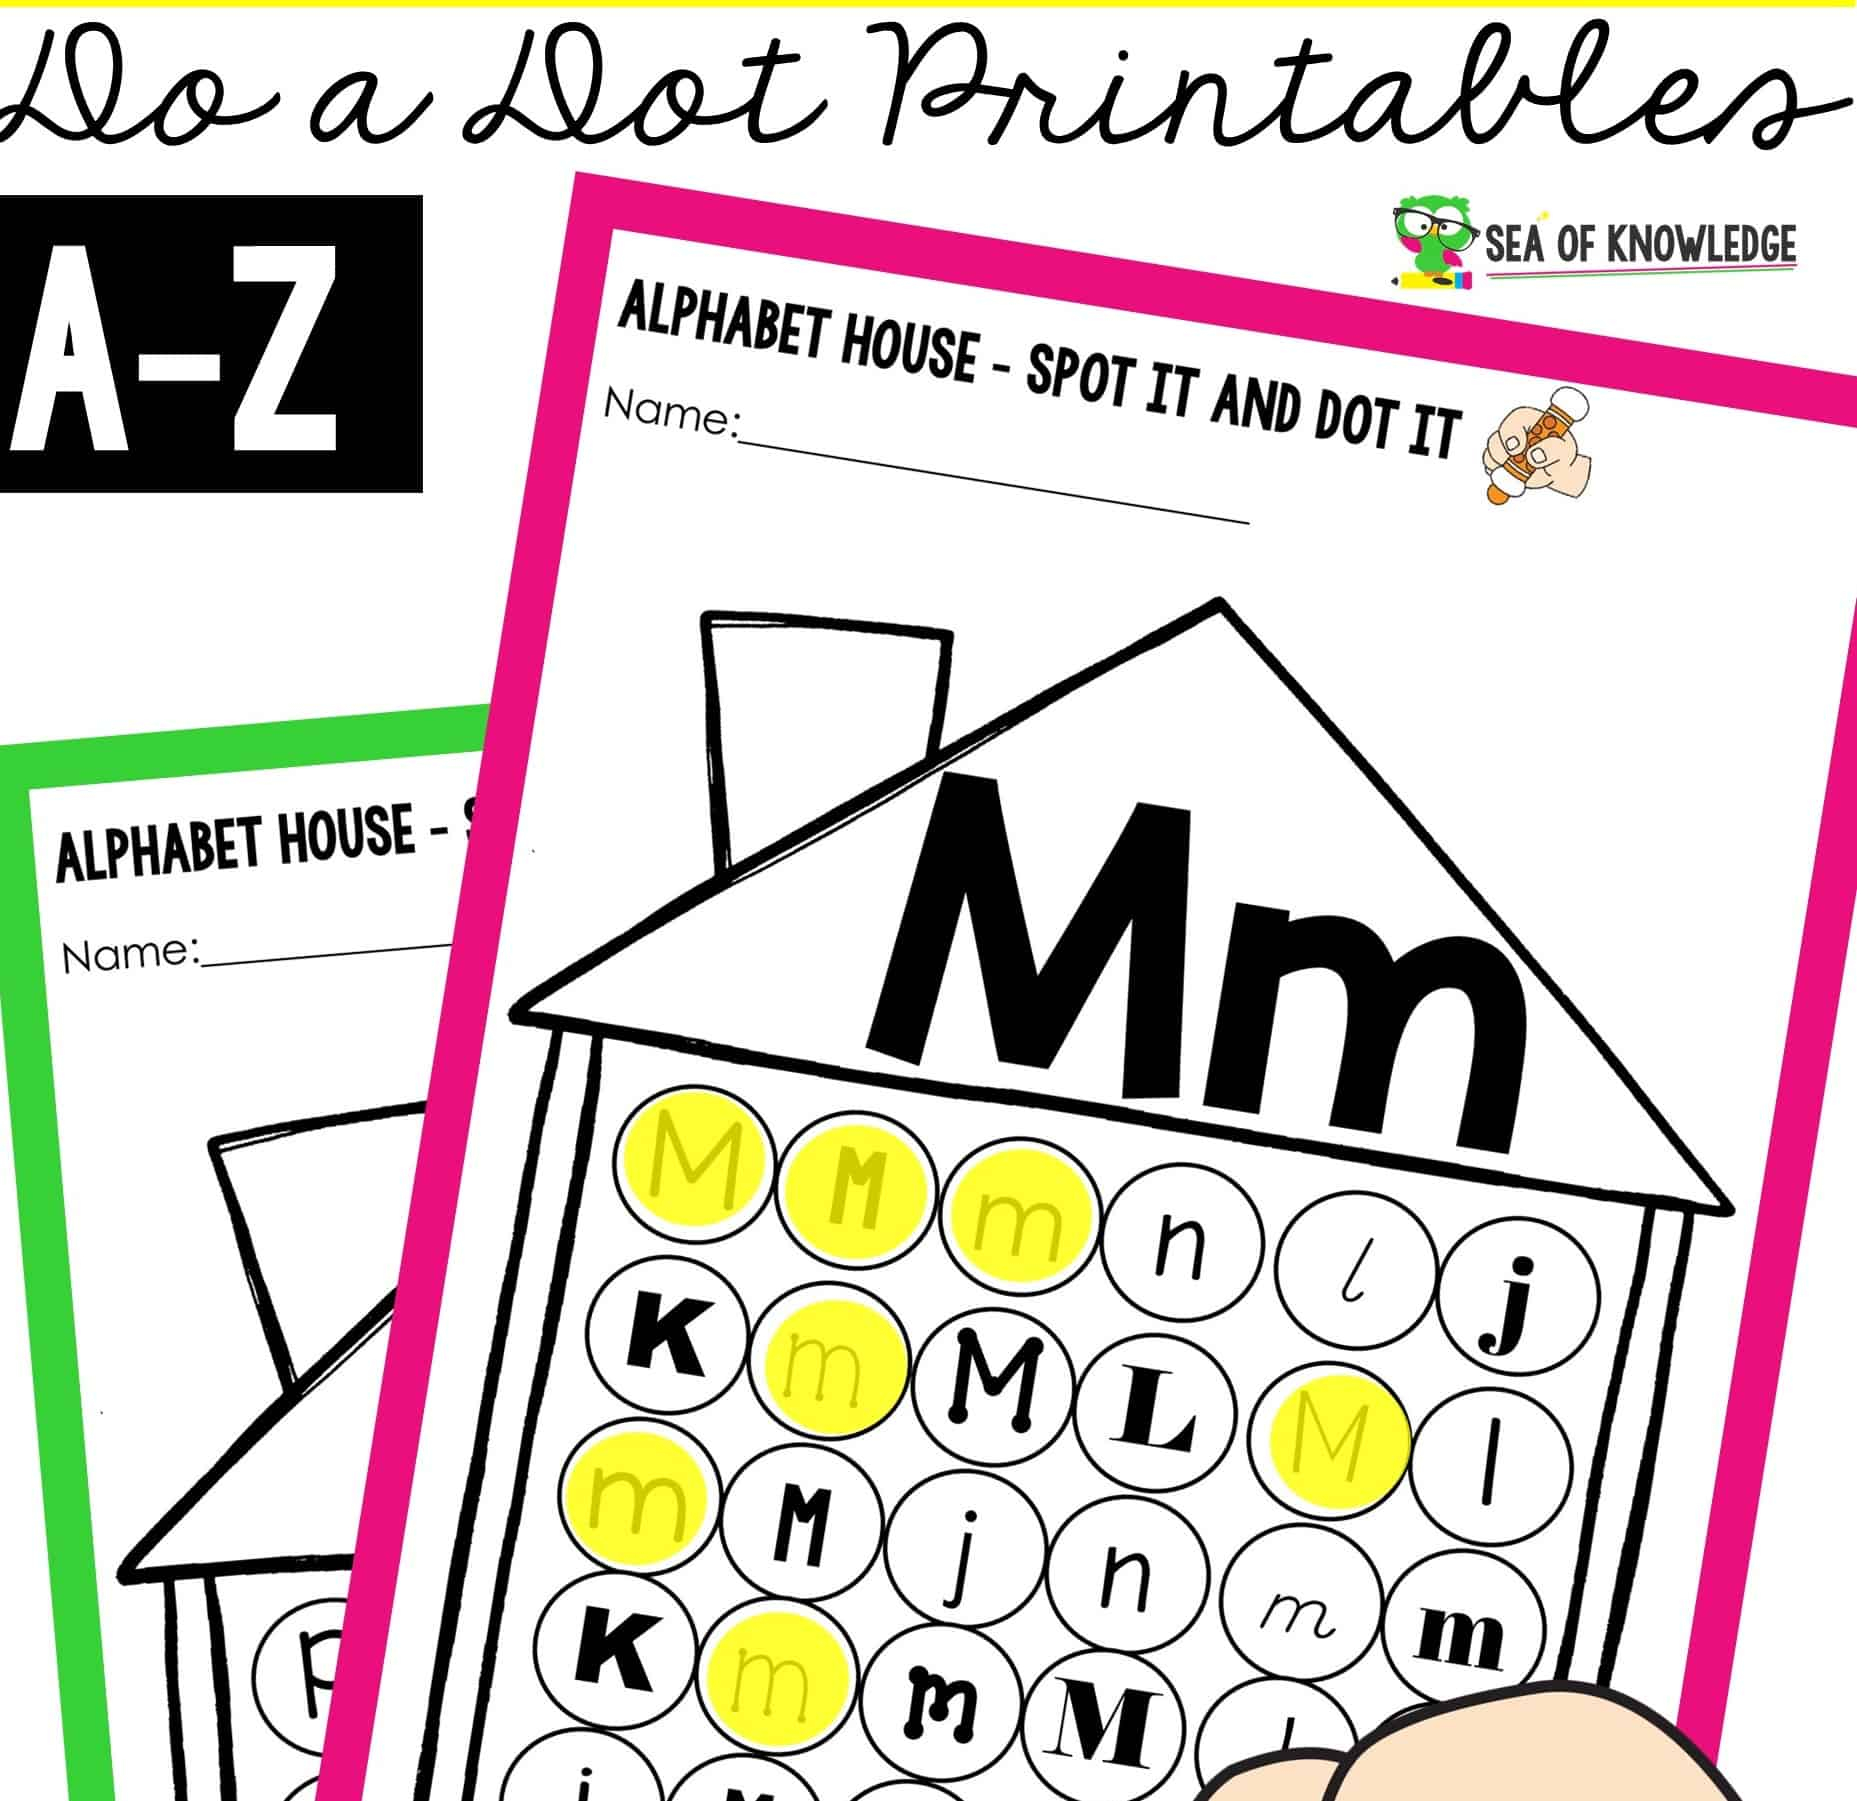 Alphabet Houses Do a Dot Printables2